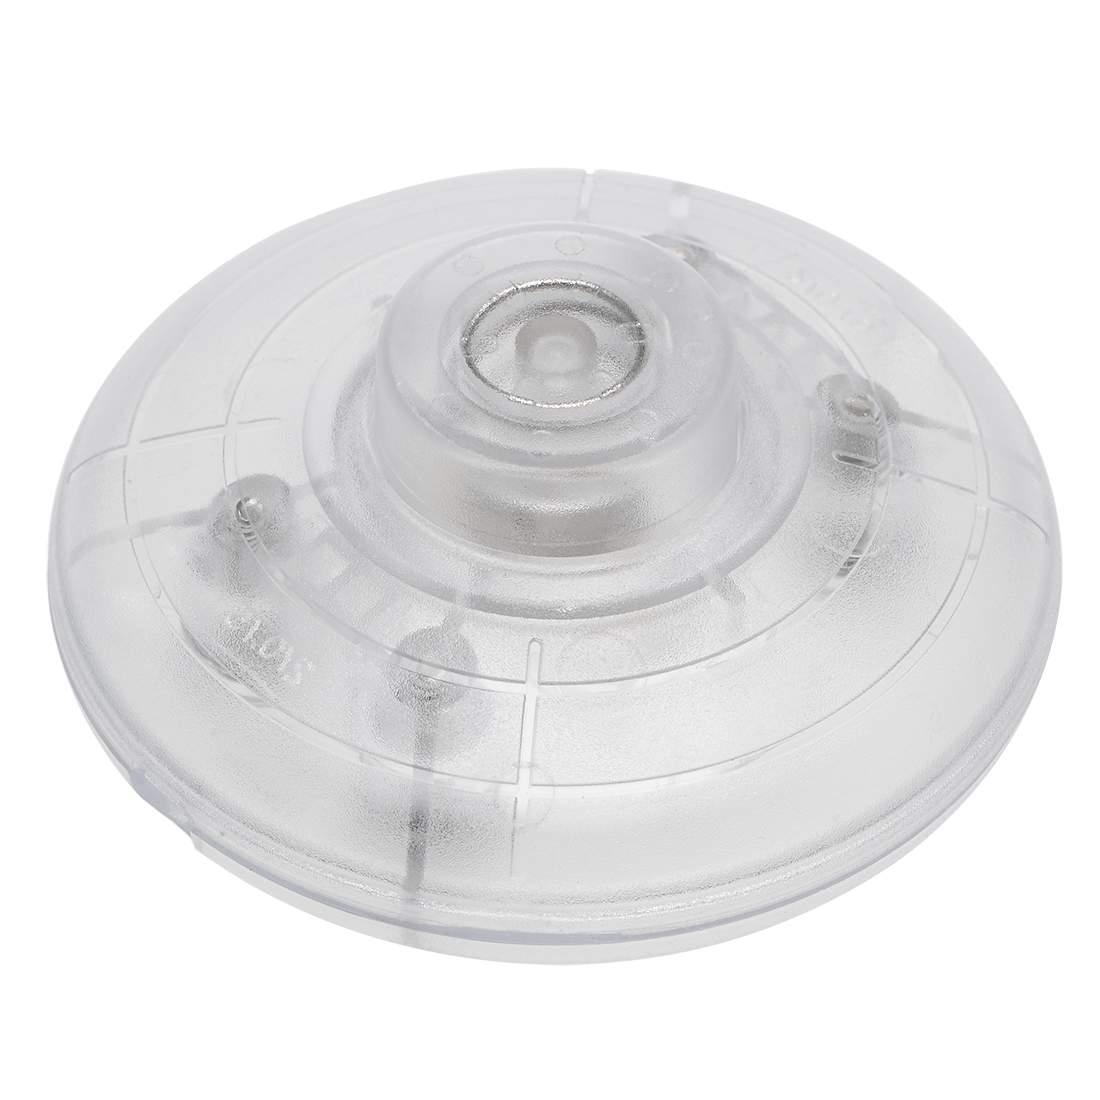 Inline Foot Pedal Push Button Switch,Lamp Light Control ON/Off Footswitch Clear